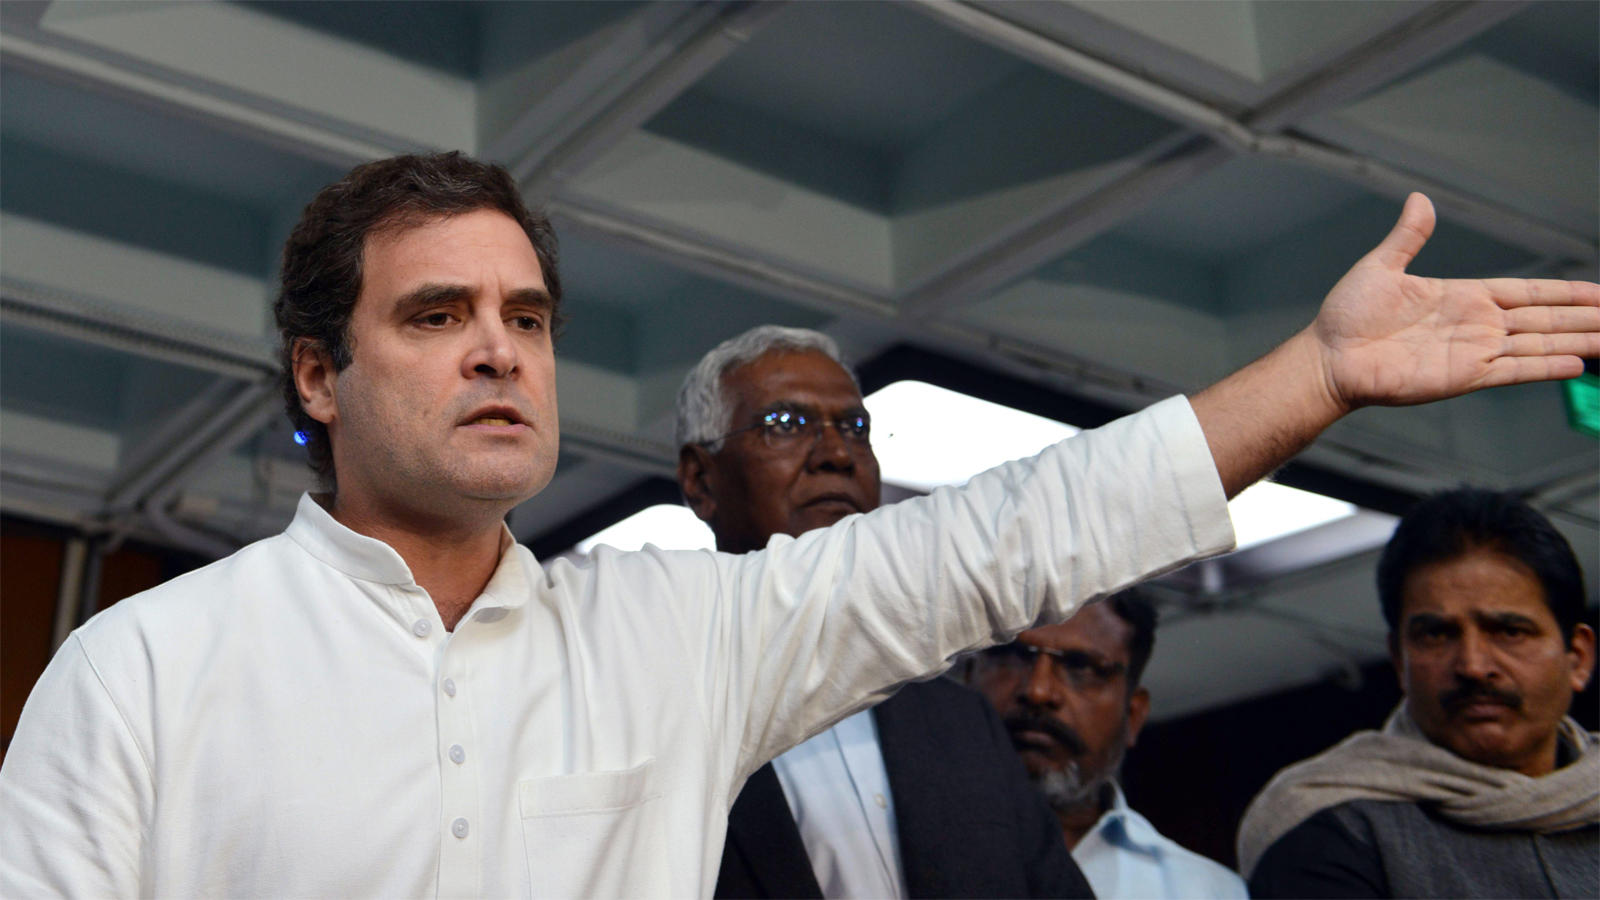 modi-govt-risking-peoples-future-by-damaging-lic-says-rahul-gandhi